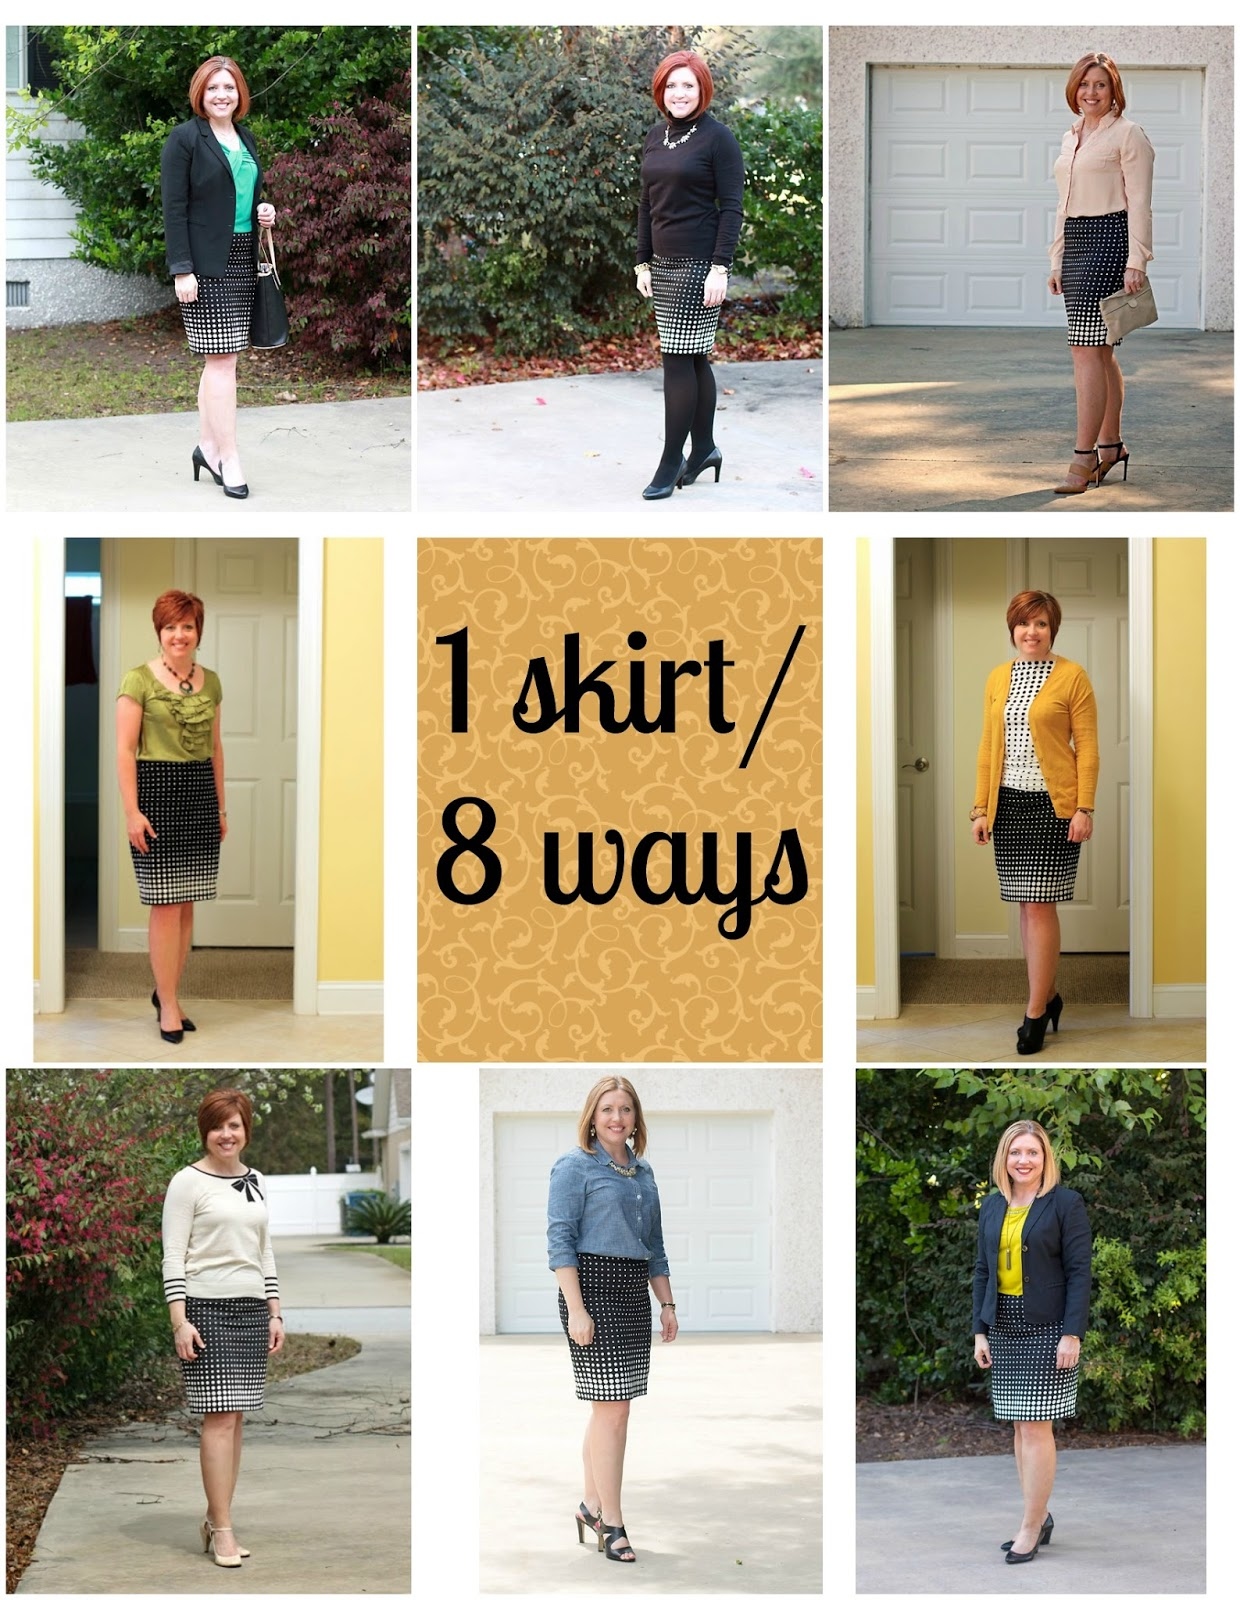 How to style one skirt 8 ways